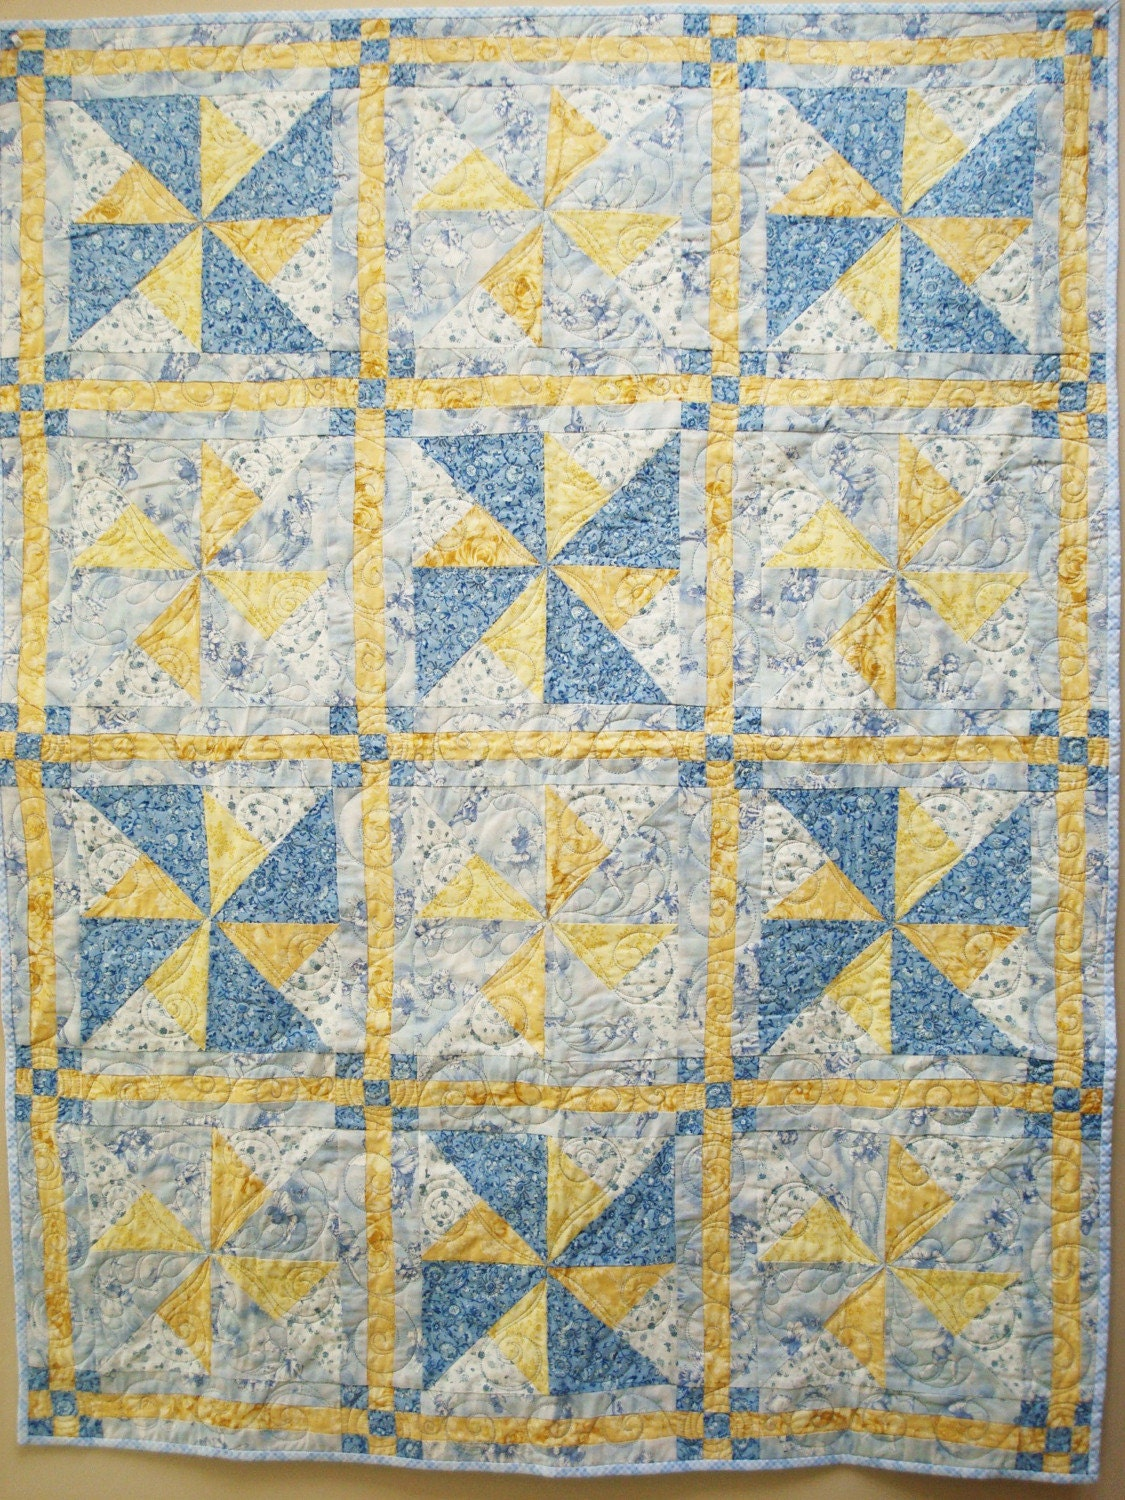 Quilt Handmade Blue Yellow White Lap Quilt Crib By Chasefabric